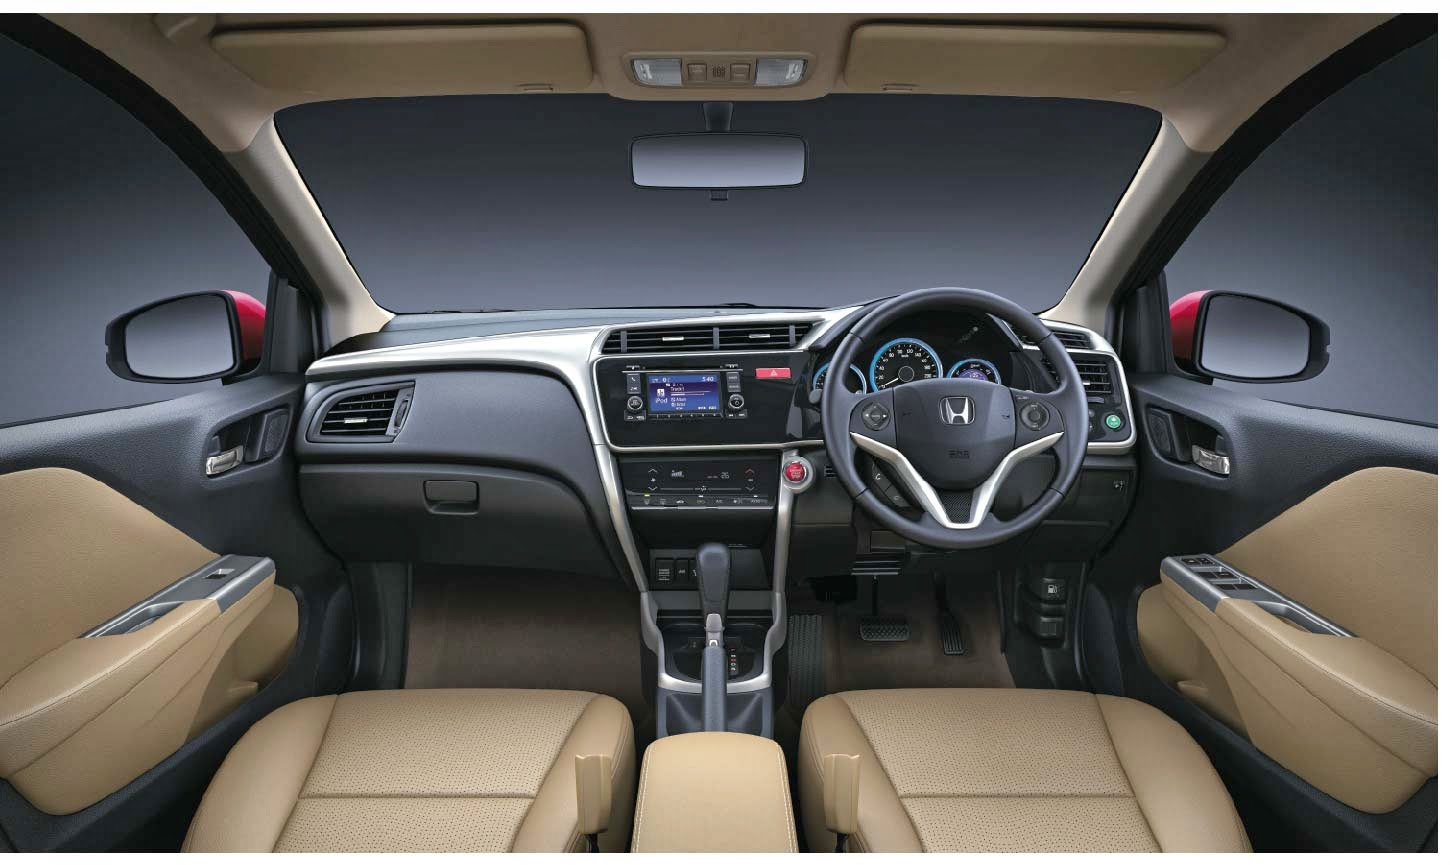 Honda City 2014 dashboard